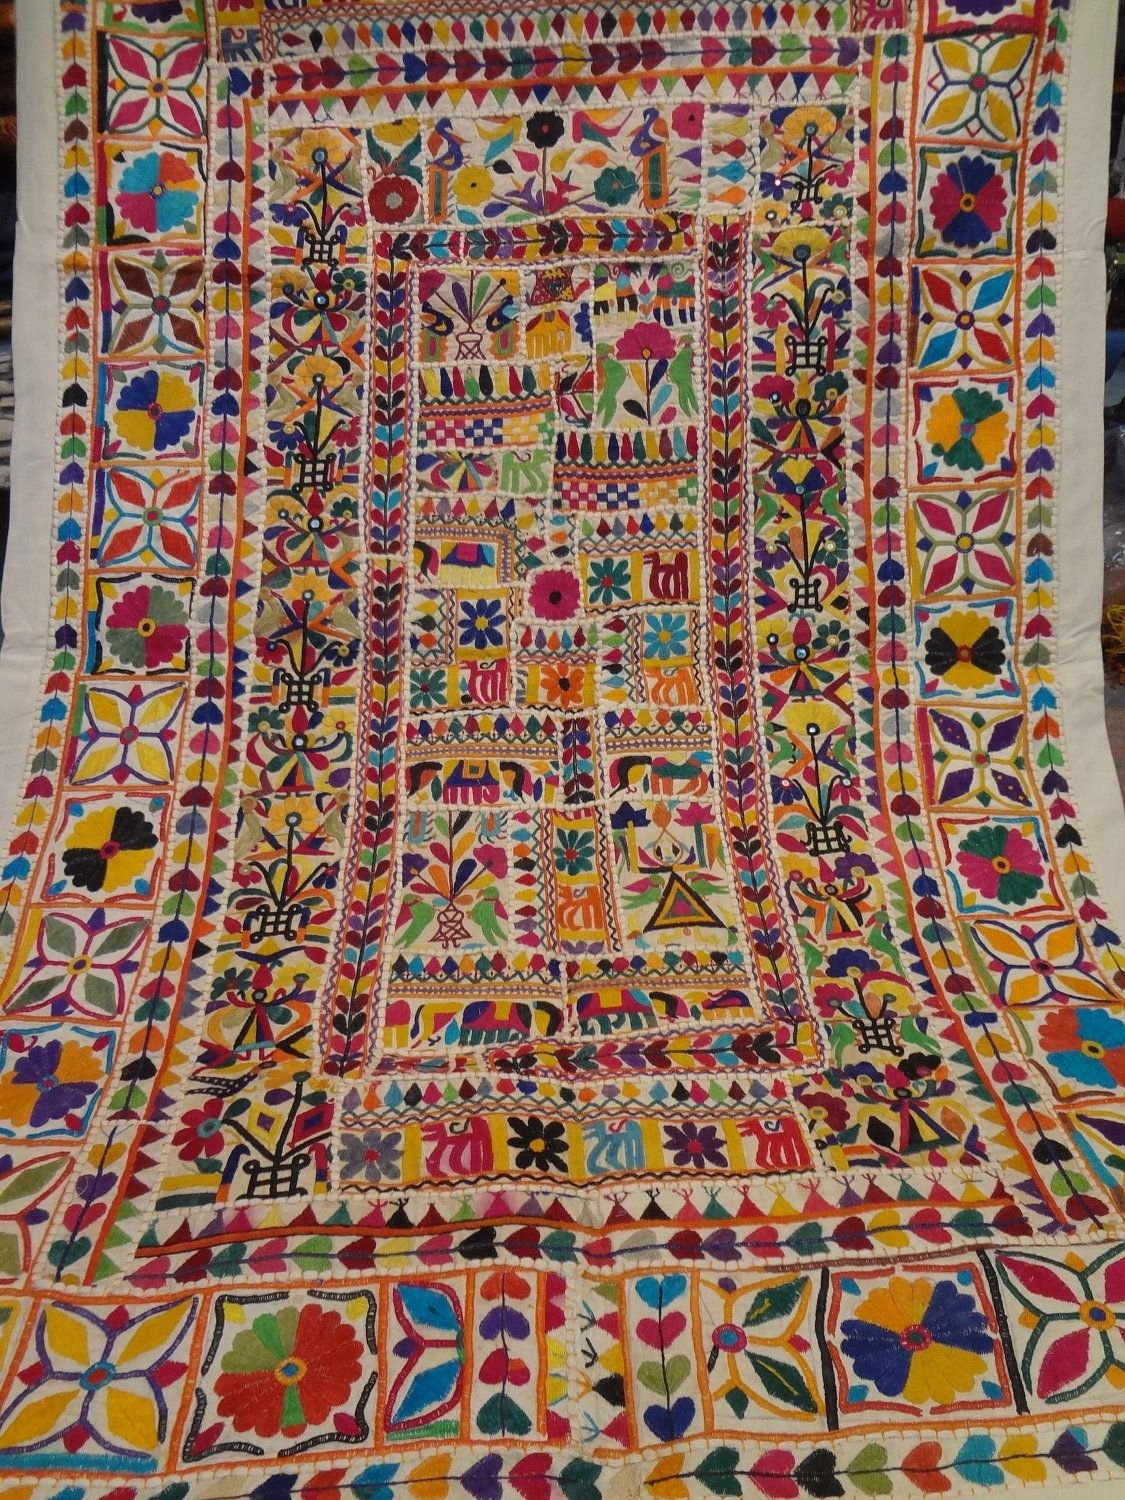 Handmade Old Patchwork Wall Hanging/home Tapestry Made From Old Pertaining To Recent Indian Fabric Art Wall Hangings (Gallery 11 of 15)